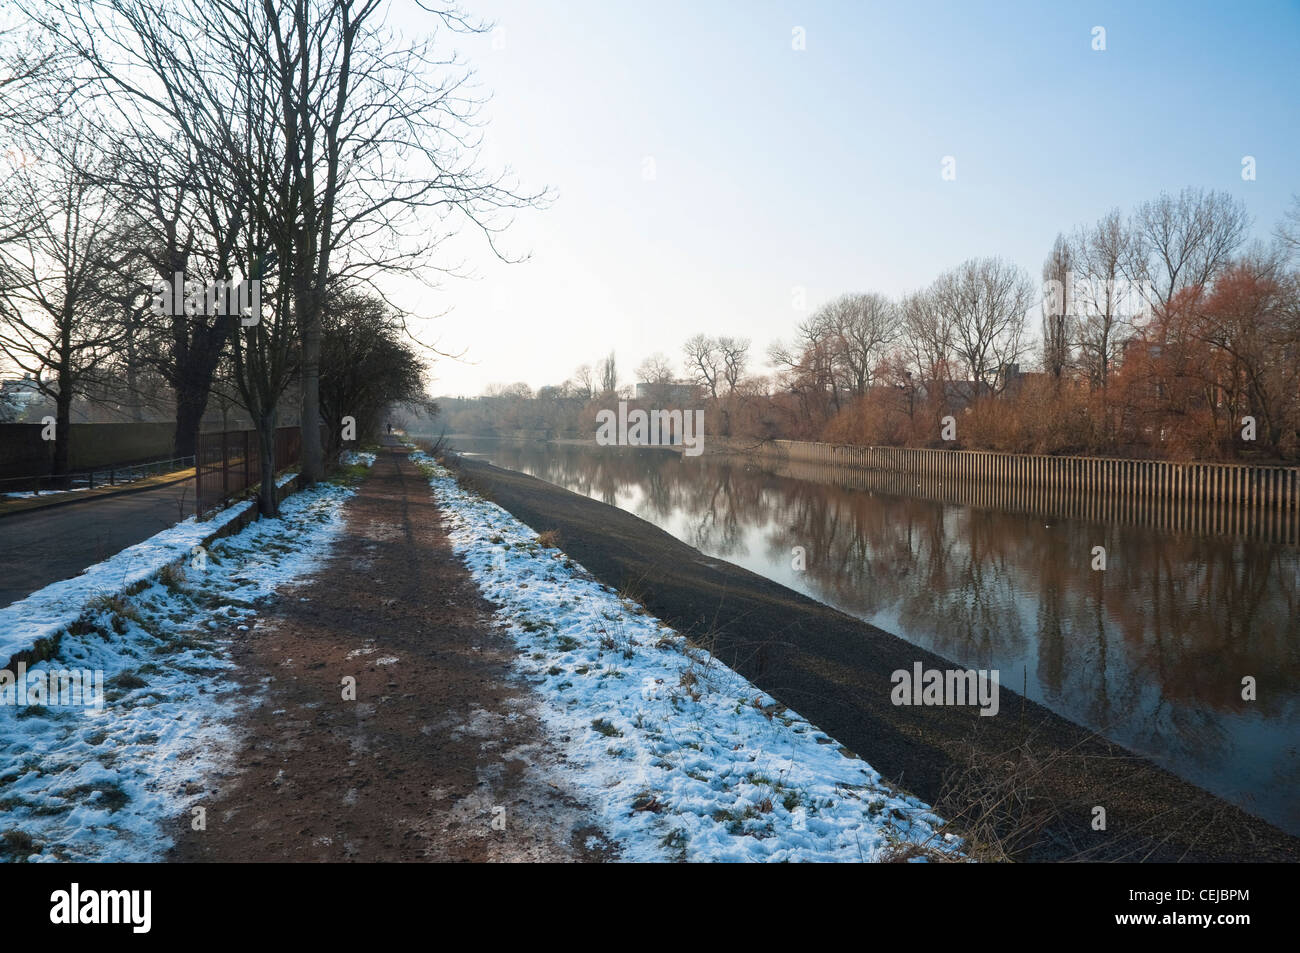 Winter view of the towpath along the River Thames. Viewed from the Kew Bridge bank looking across the river to Brentford. Stock Photo